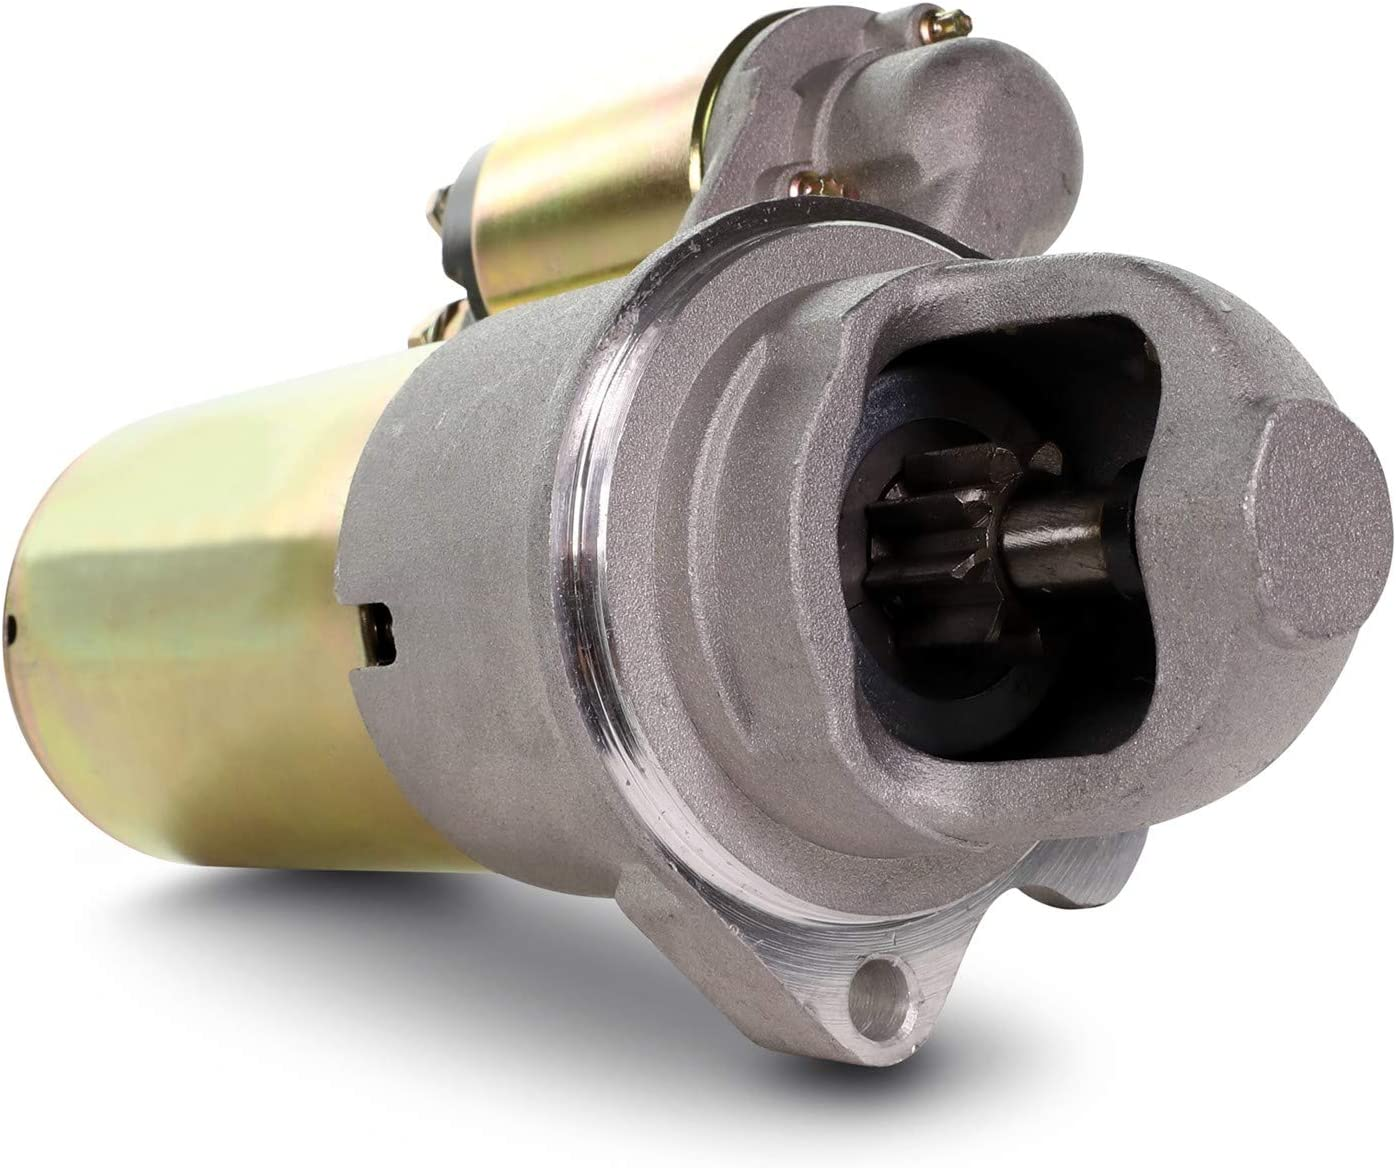 PREMIER GEAR PROFESSIONAL GRADE ENGINEERED FOR QUALITY PGEU-31231 Starter